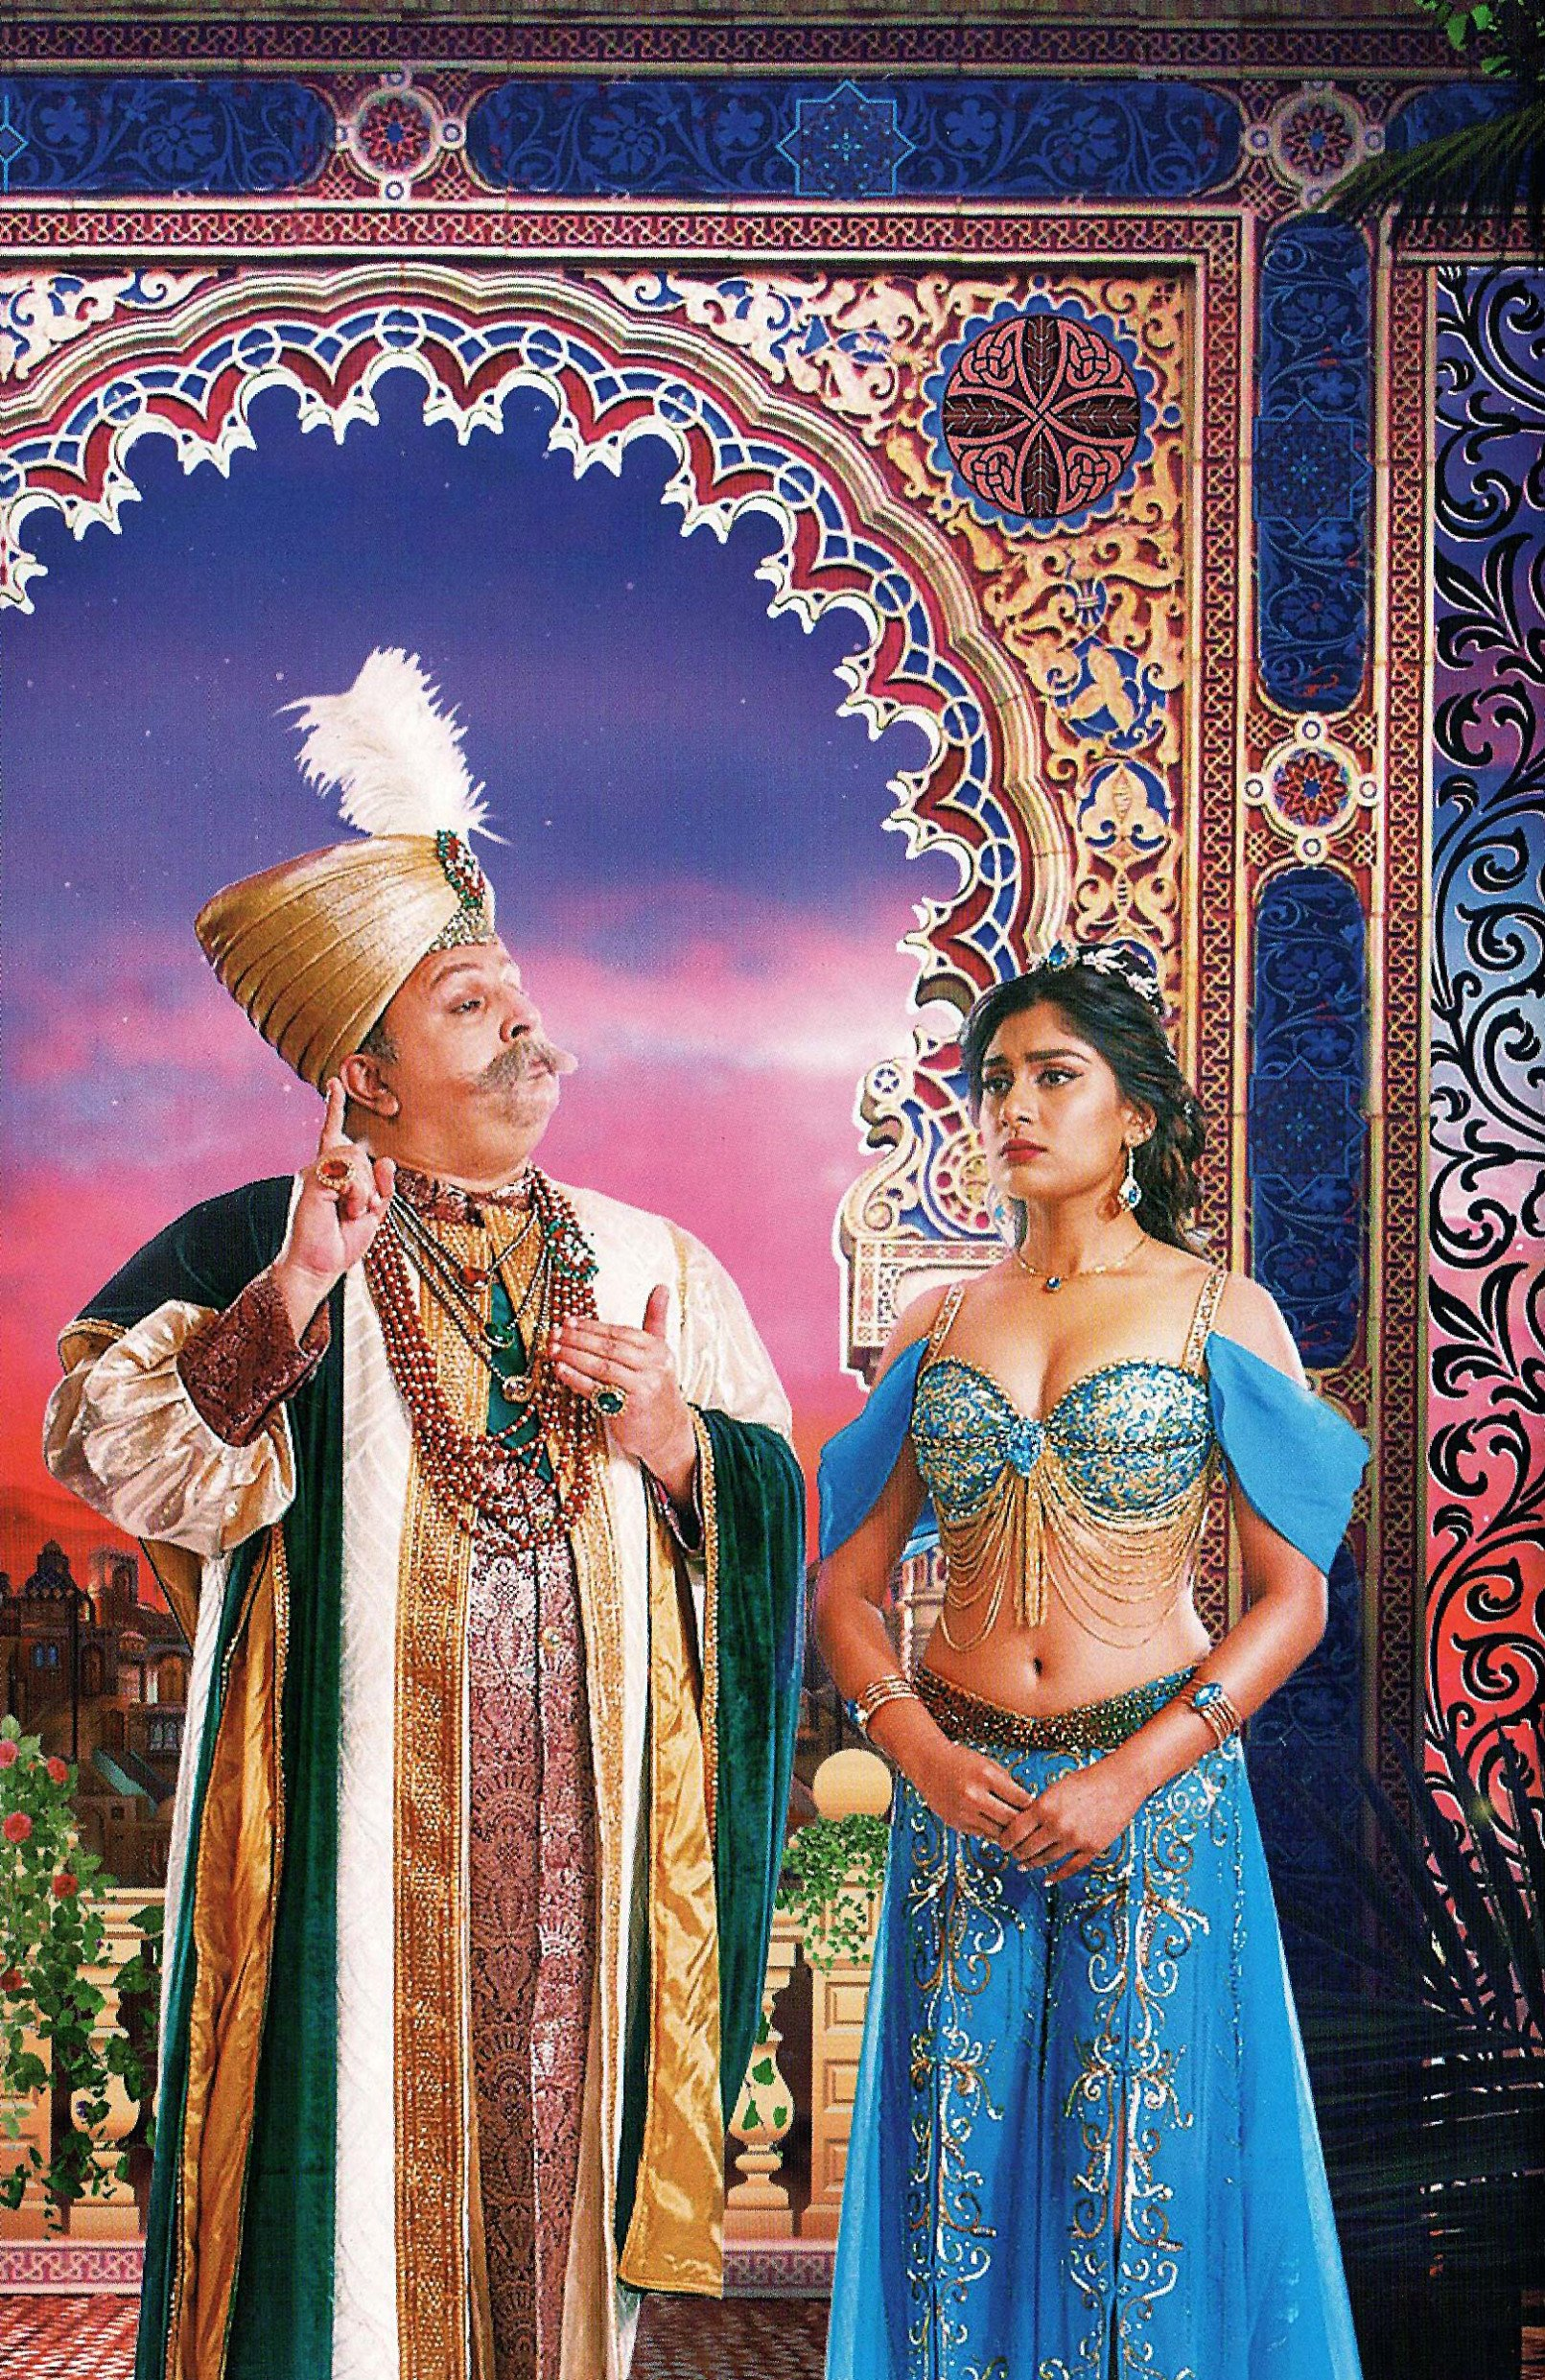 BookMyShow and Disney's Broadway-style musical 'Aladdin' casts a 'magical' spell